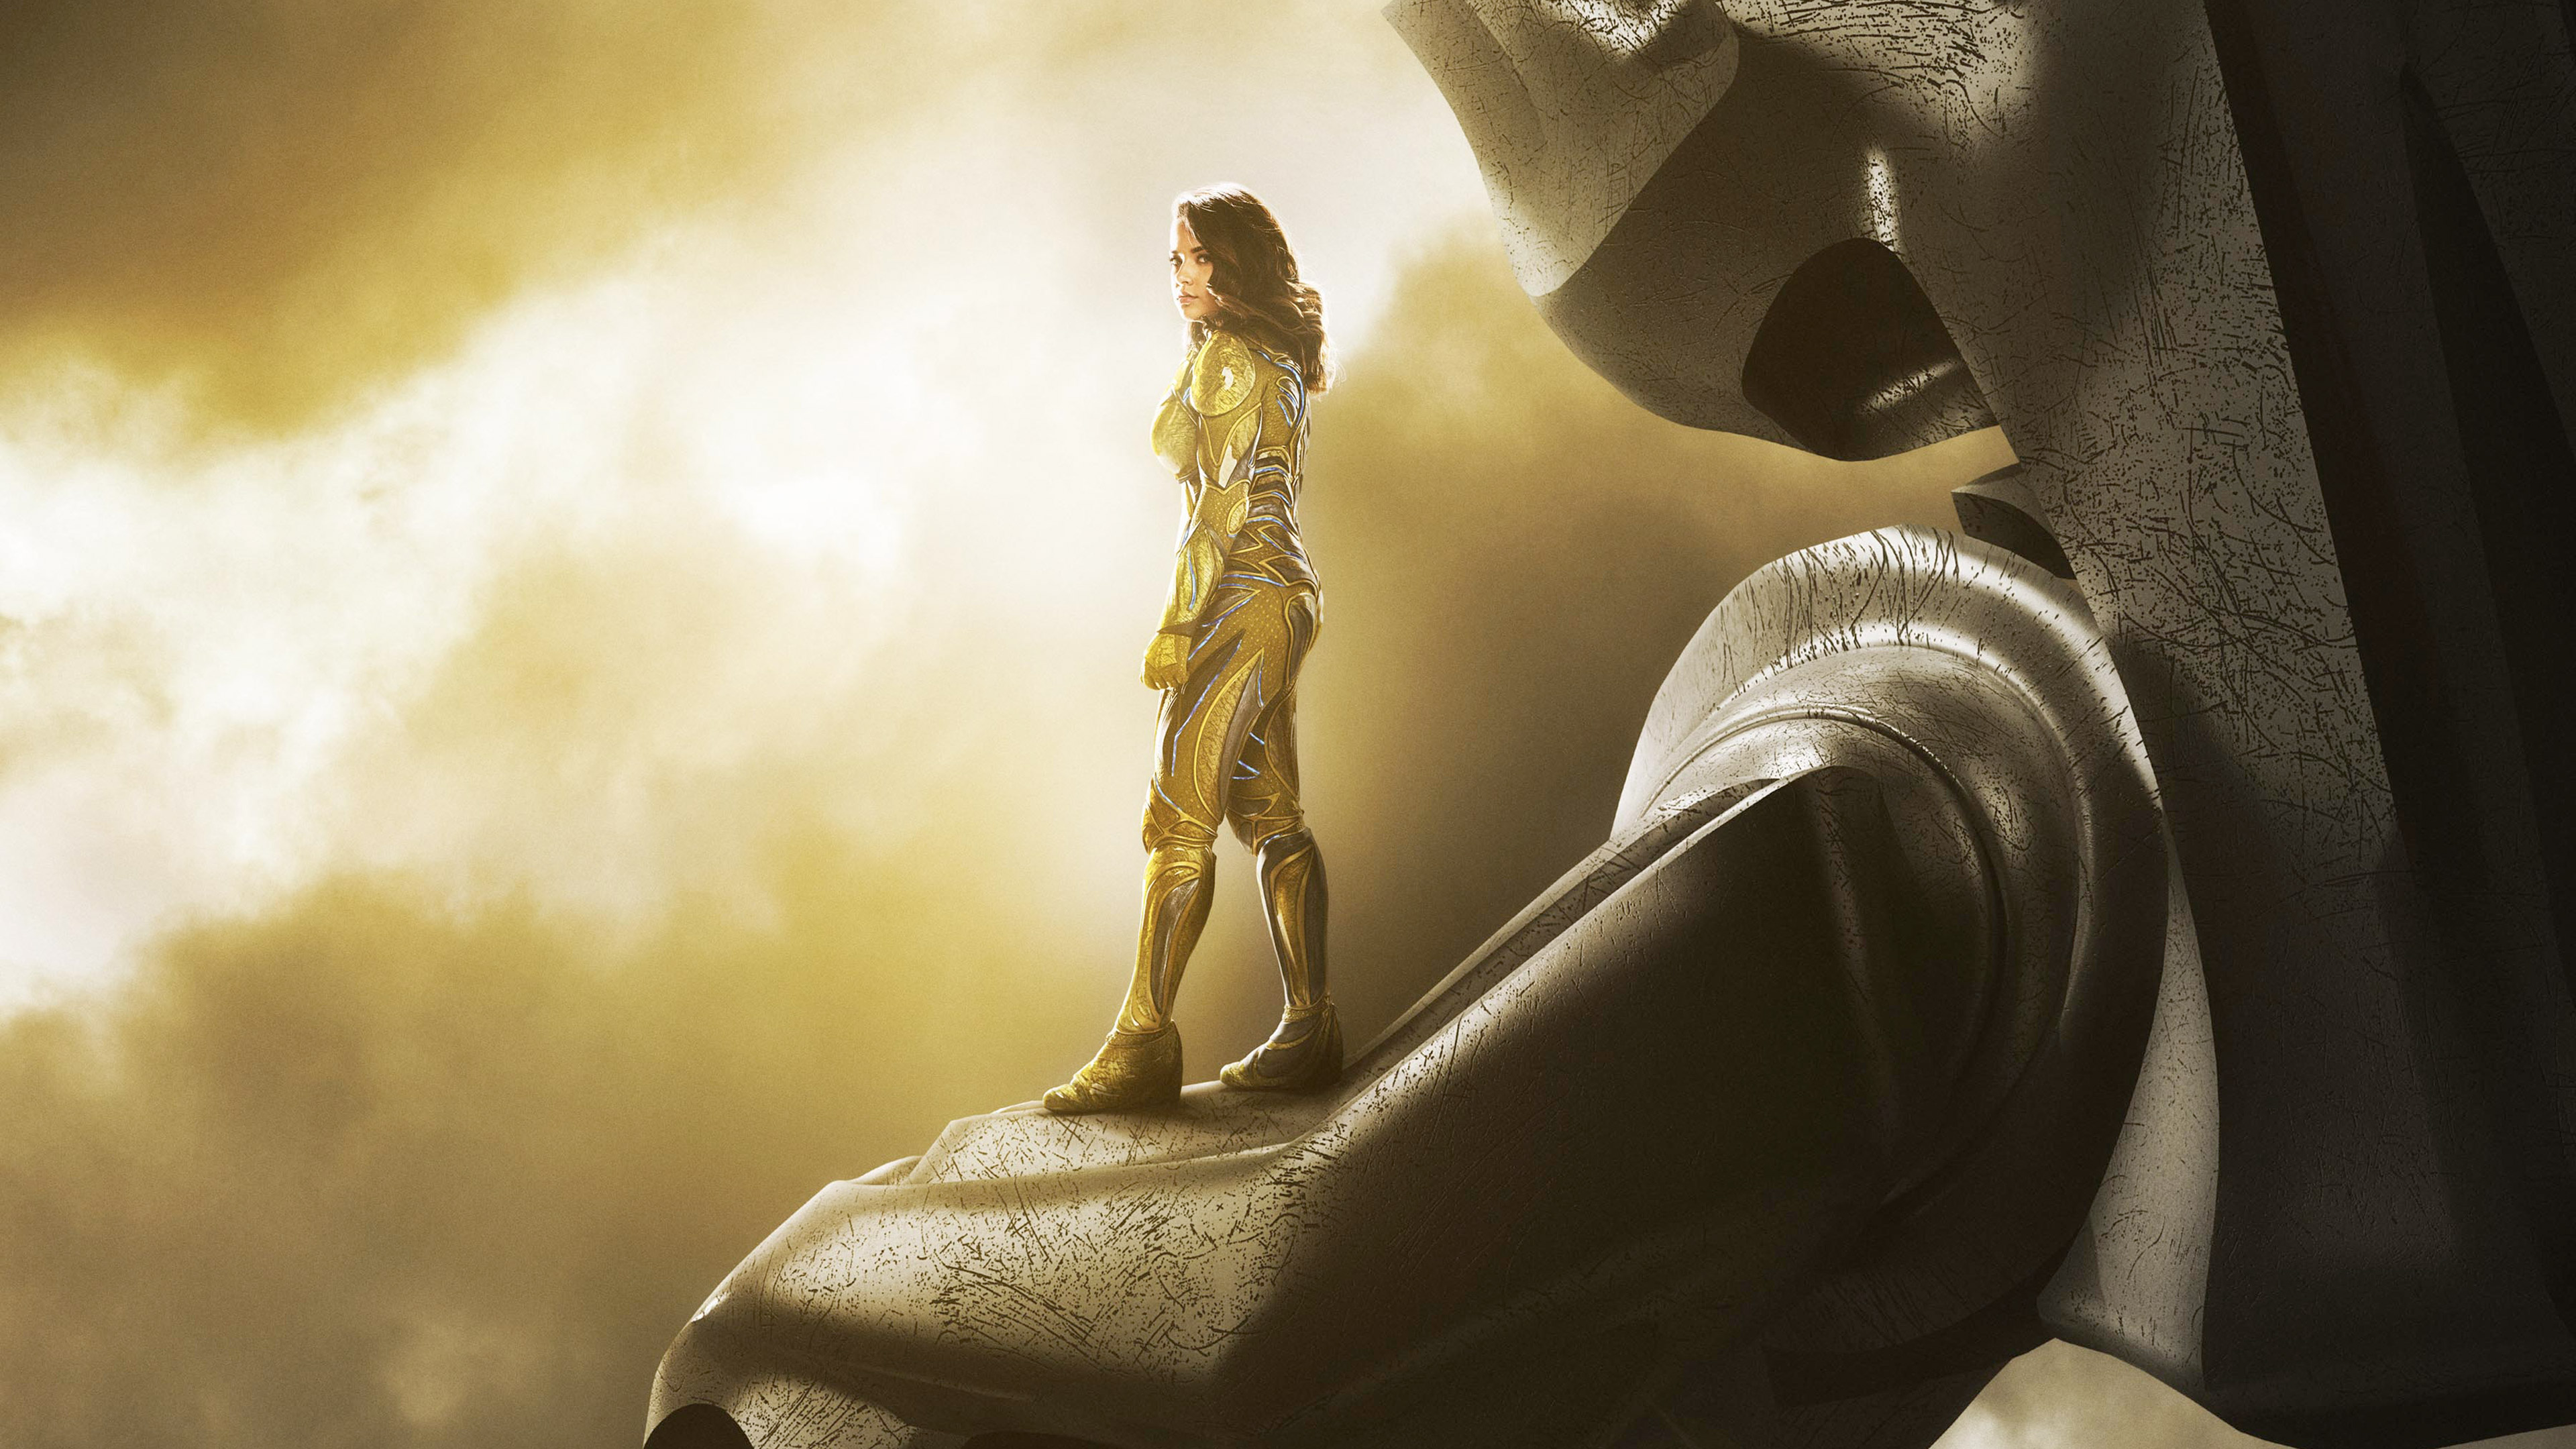 2017 power rangers zord yellow movies hd 4k wallpapers